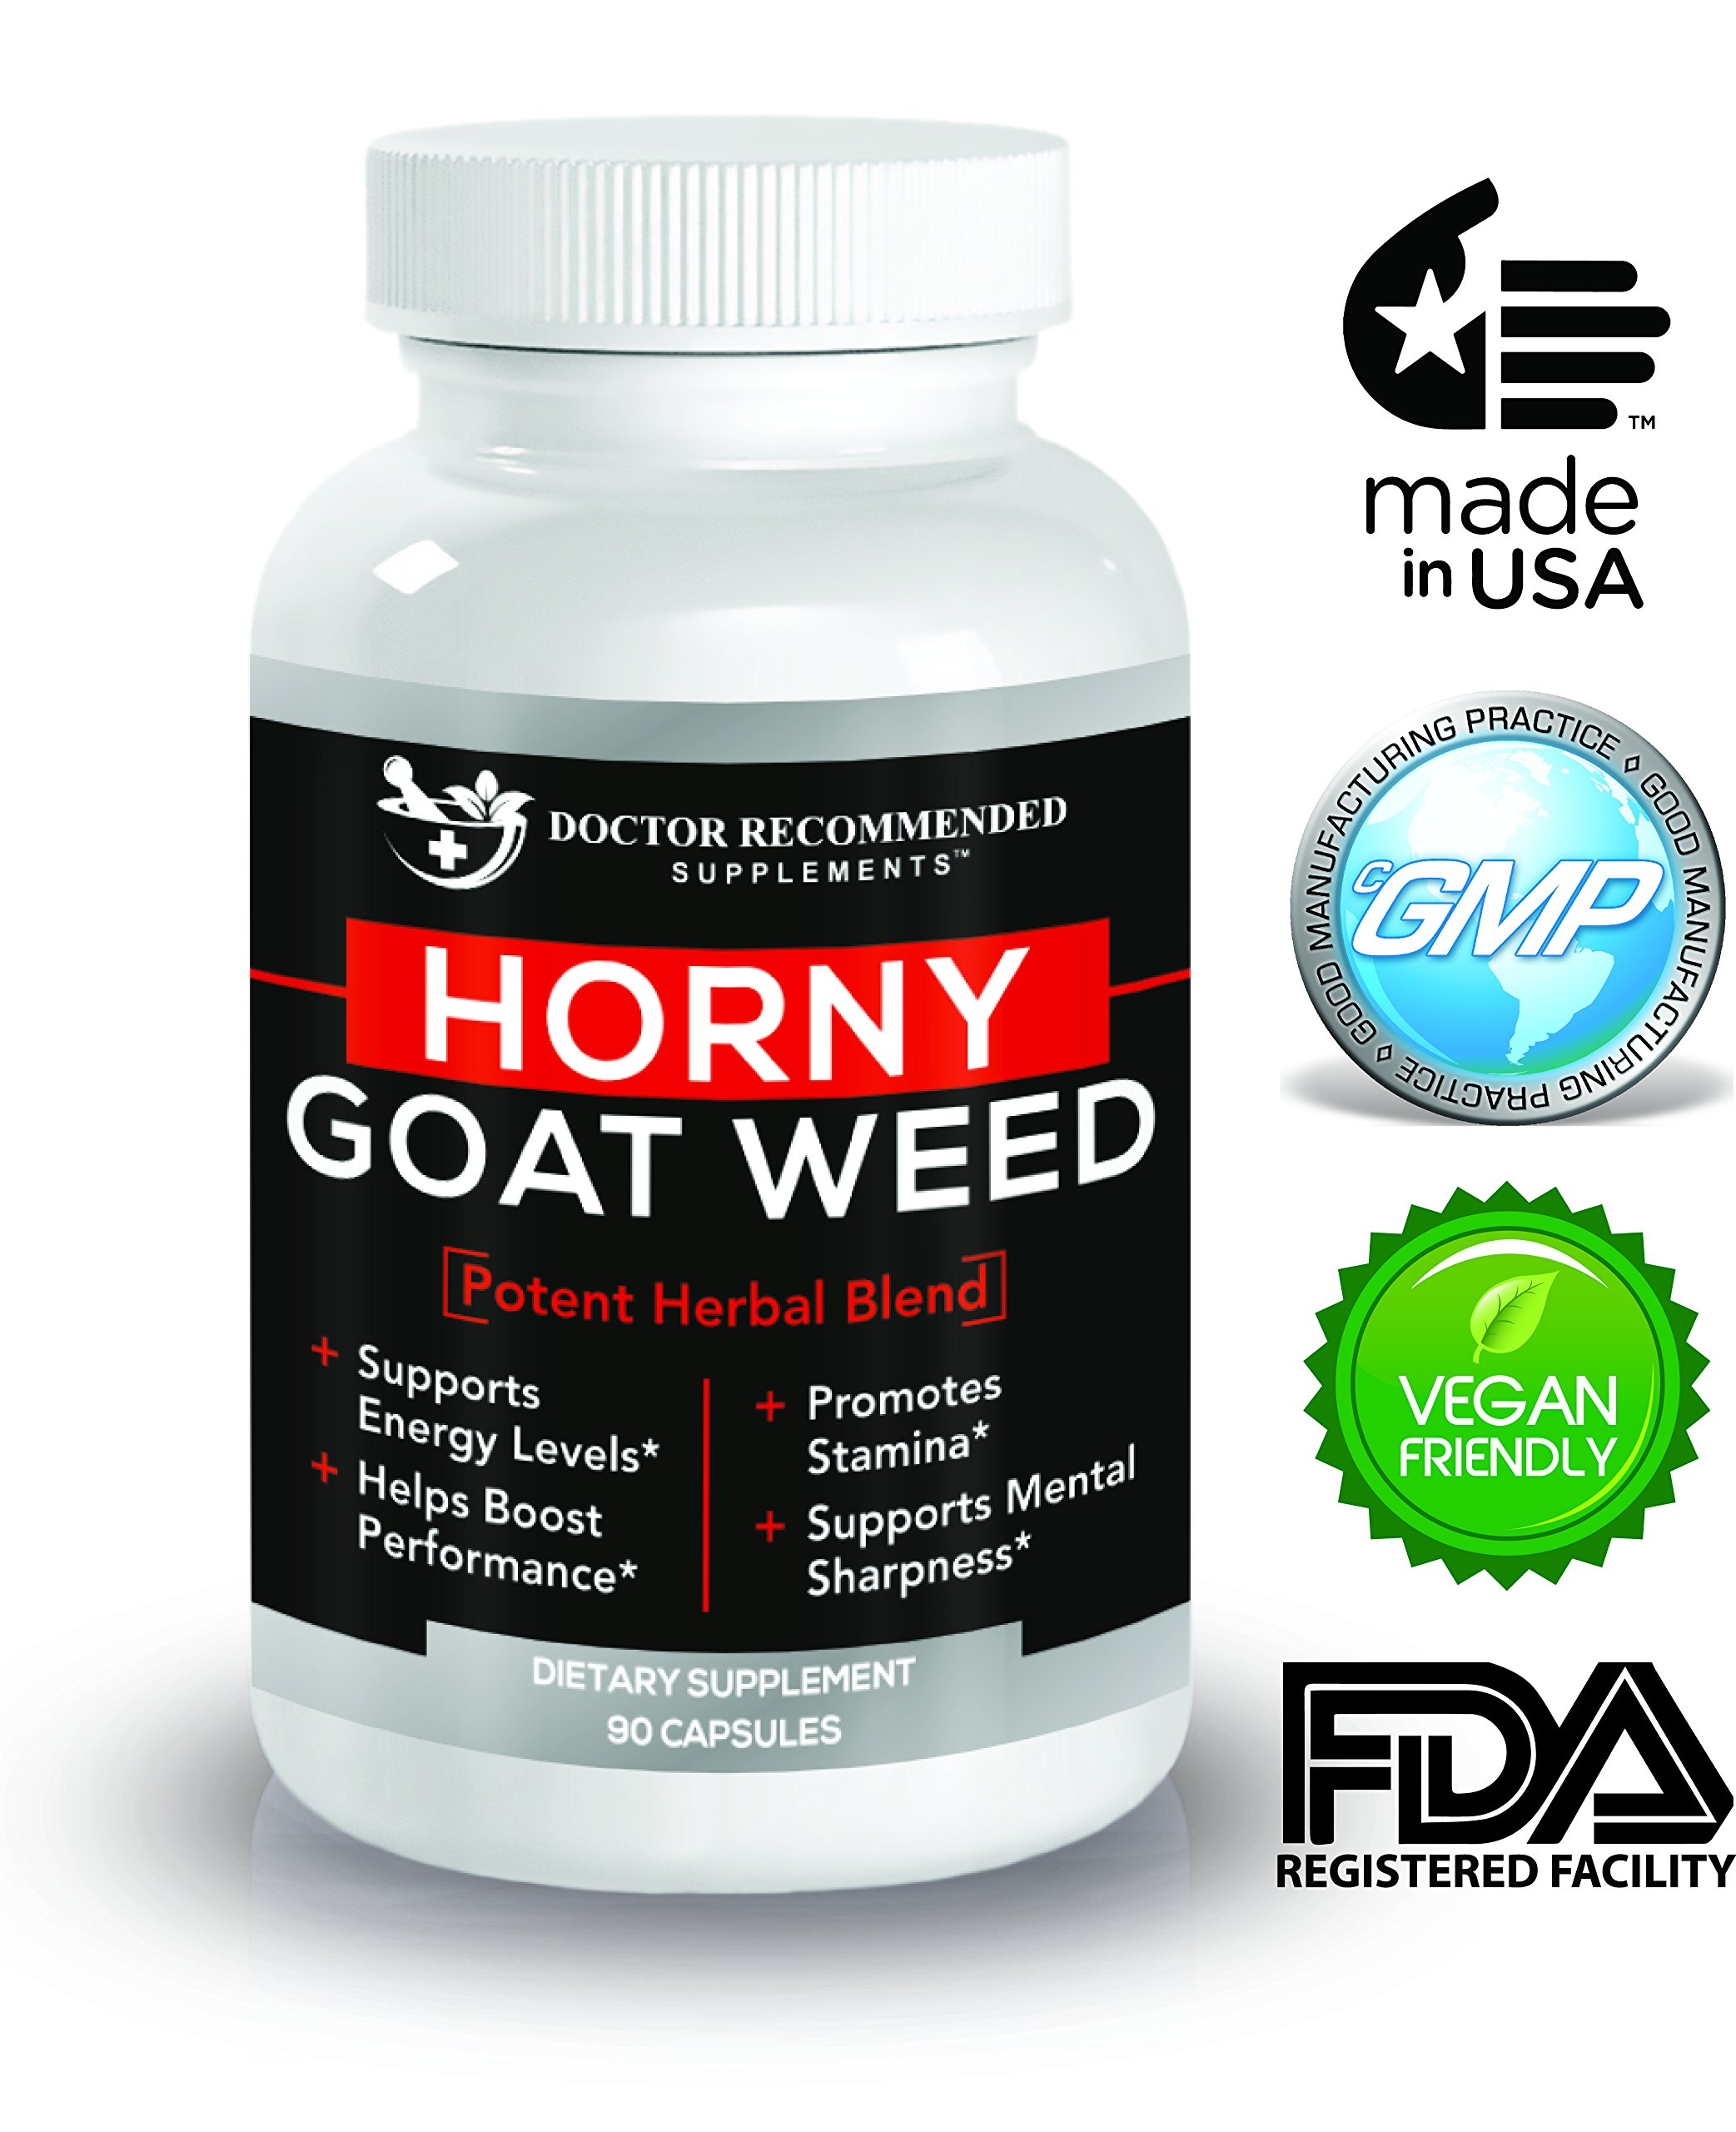 Doctor Recommended Horny Goat Weed - Maximum Male Performance - Intense Libido Boost - Post Workout Supplement - 120mg of Icariin Per Dose - Natural Herb Blend by DOCTOR RECOMMENDED SUPPLEMENTS (Image #9)